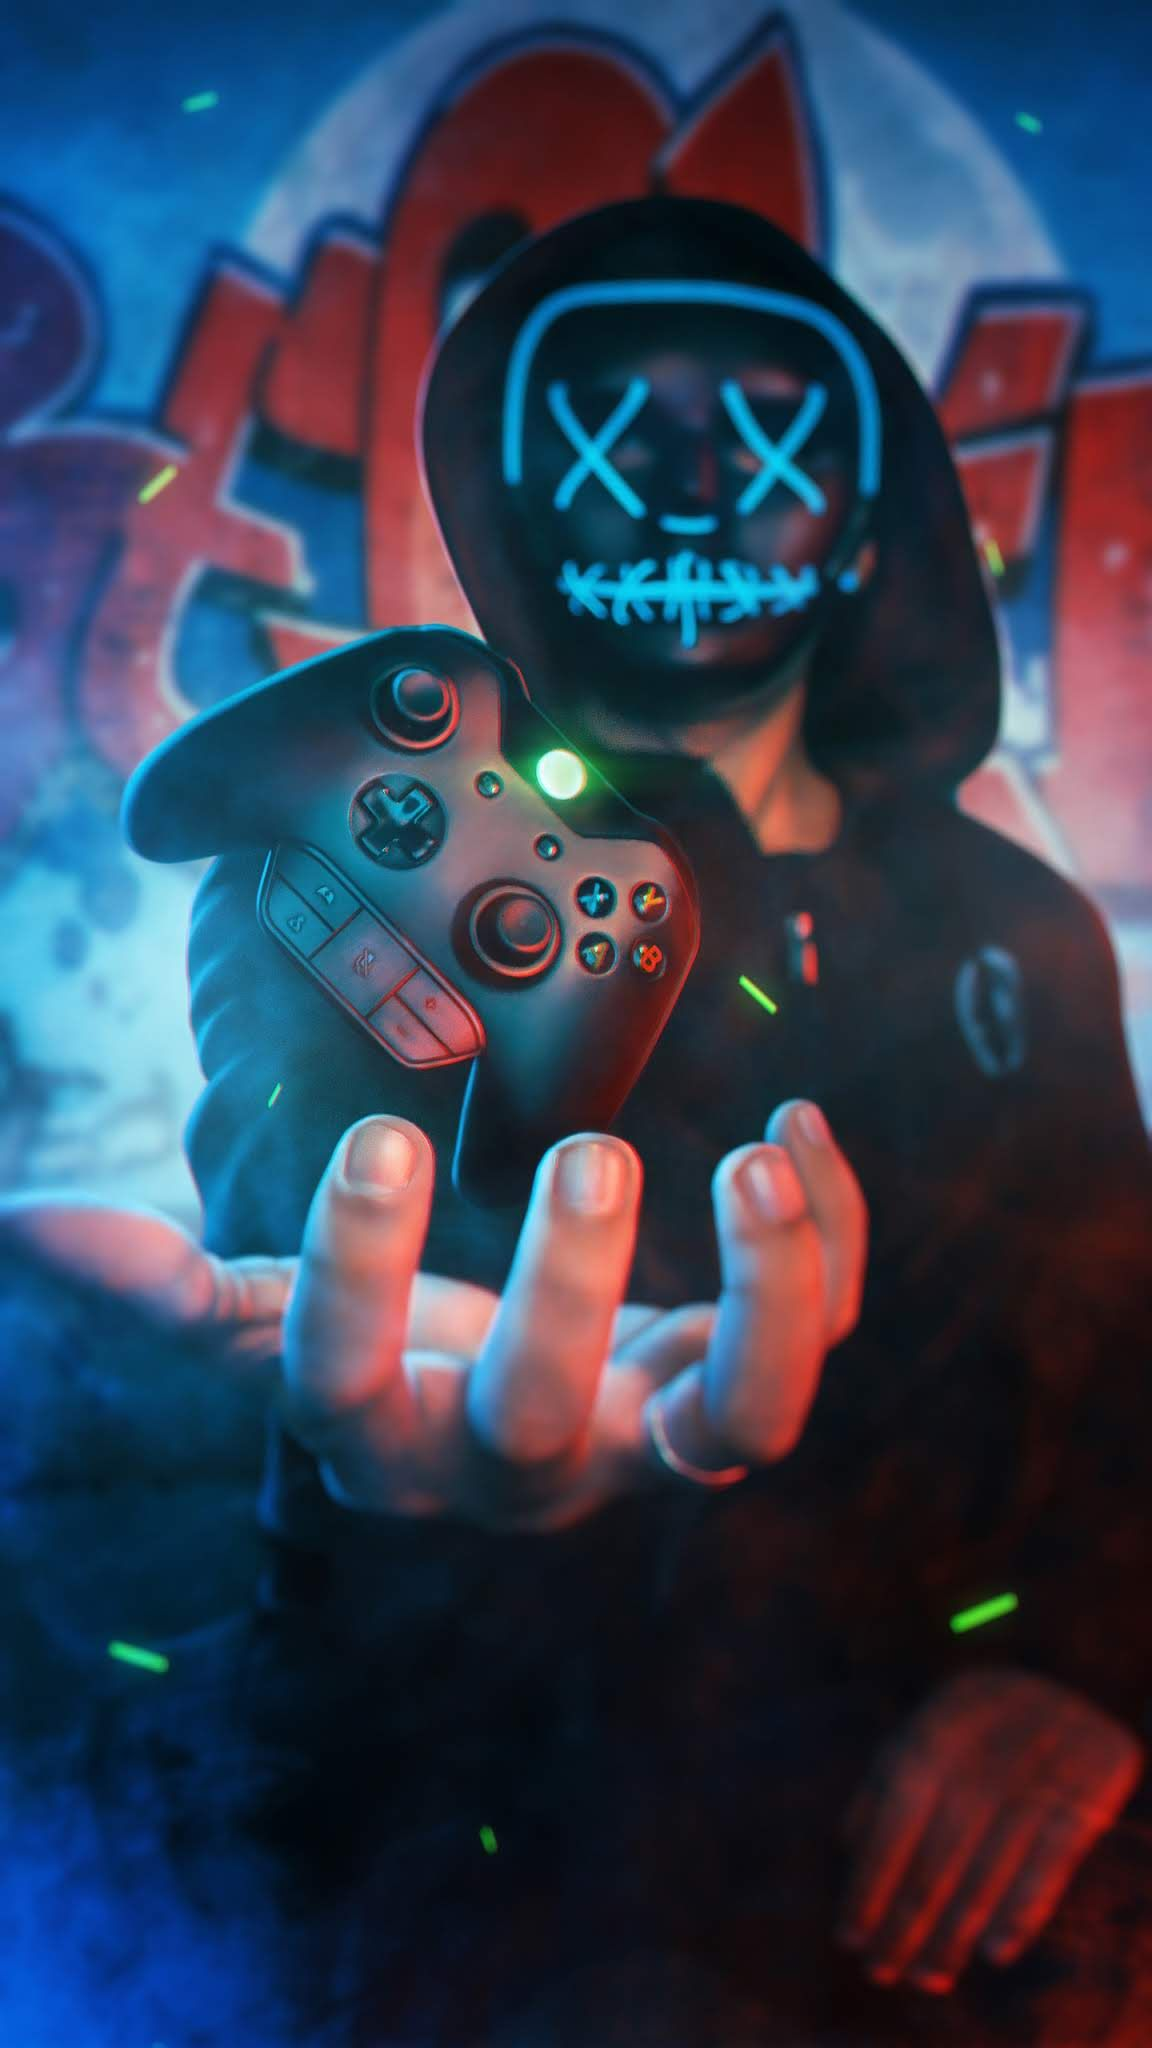 Gamer Boy Mask Mobile Wallpaper In 2020 Game Wallpaper Iphone Bape Wallpaper Iphone Gaming Wallpapers